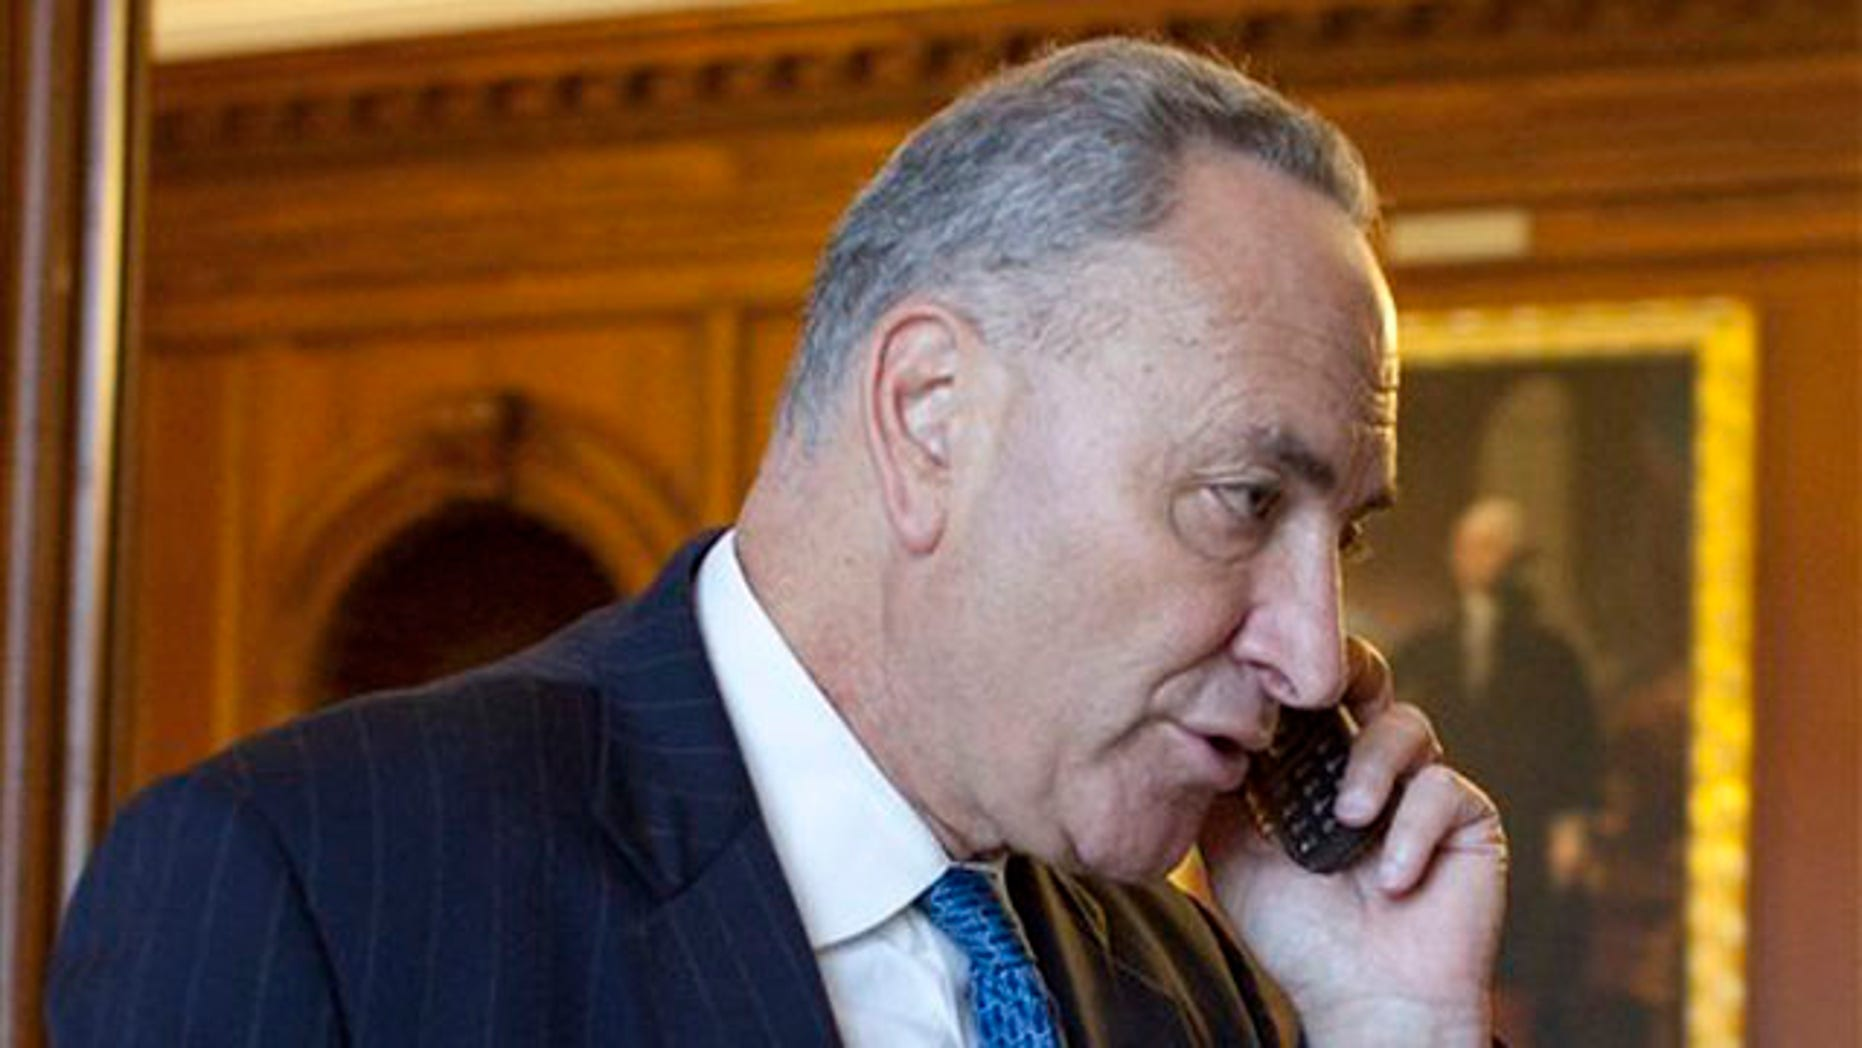 Sen. Charles Schumer enters the office of House Democratic Leader Nancy Pelosi on Capitol Hill in Washington July 31.